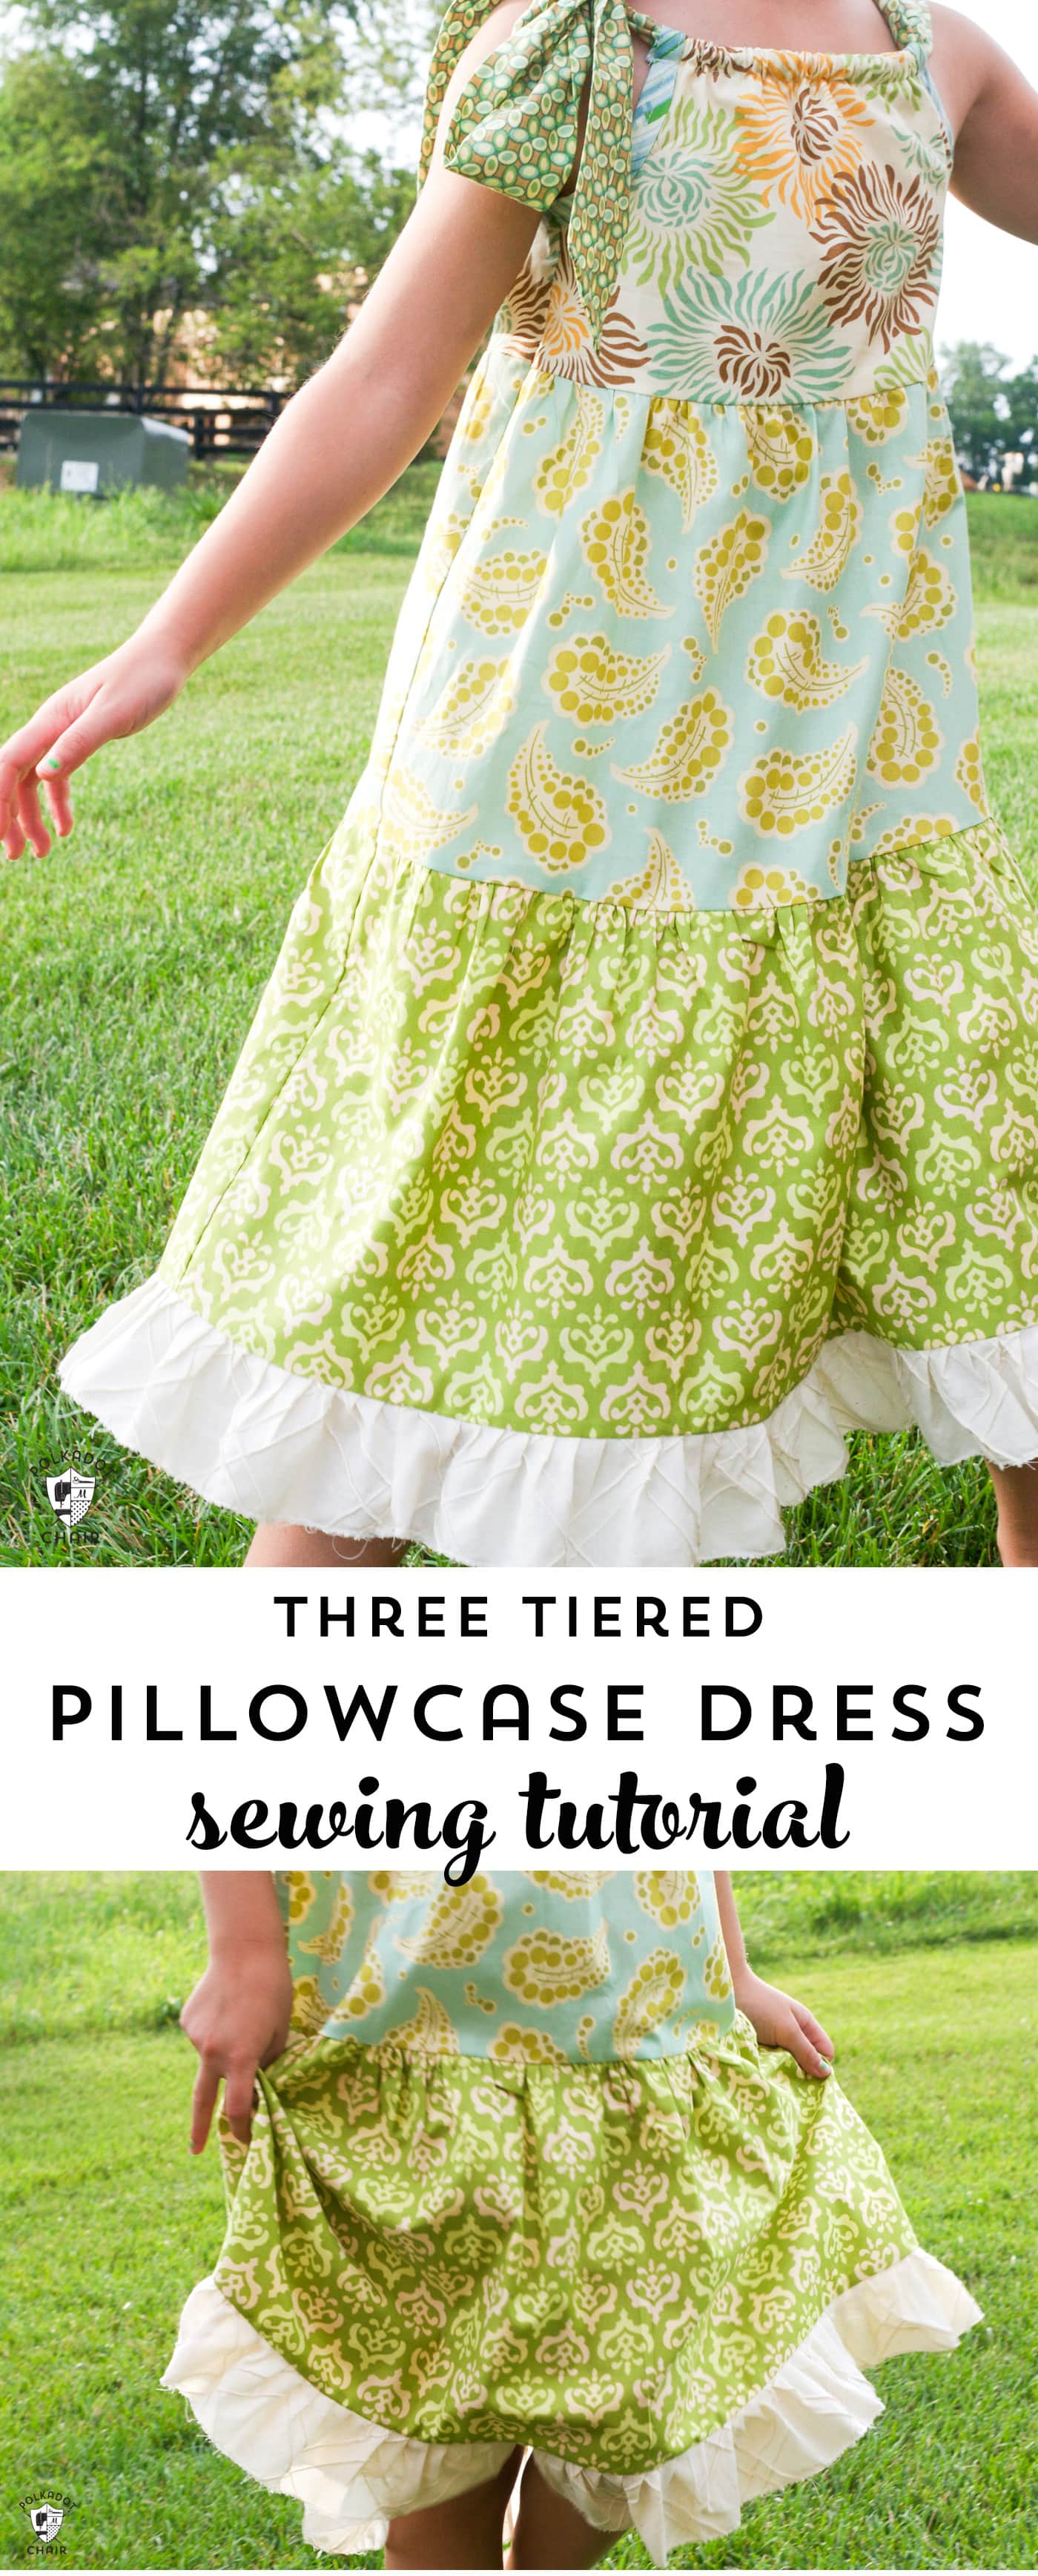 tuesday tutorial  tiered pillowcase dress